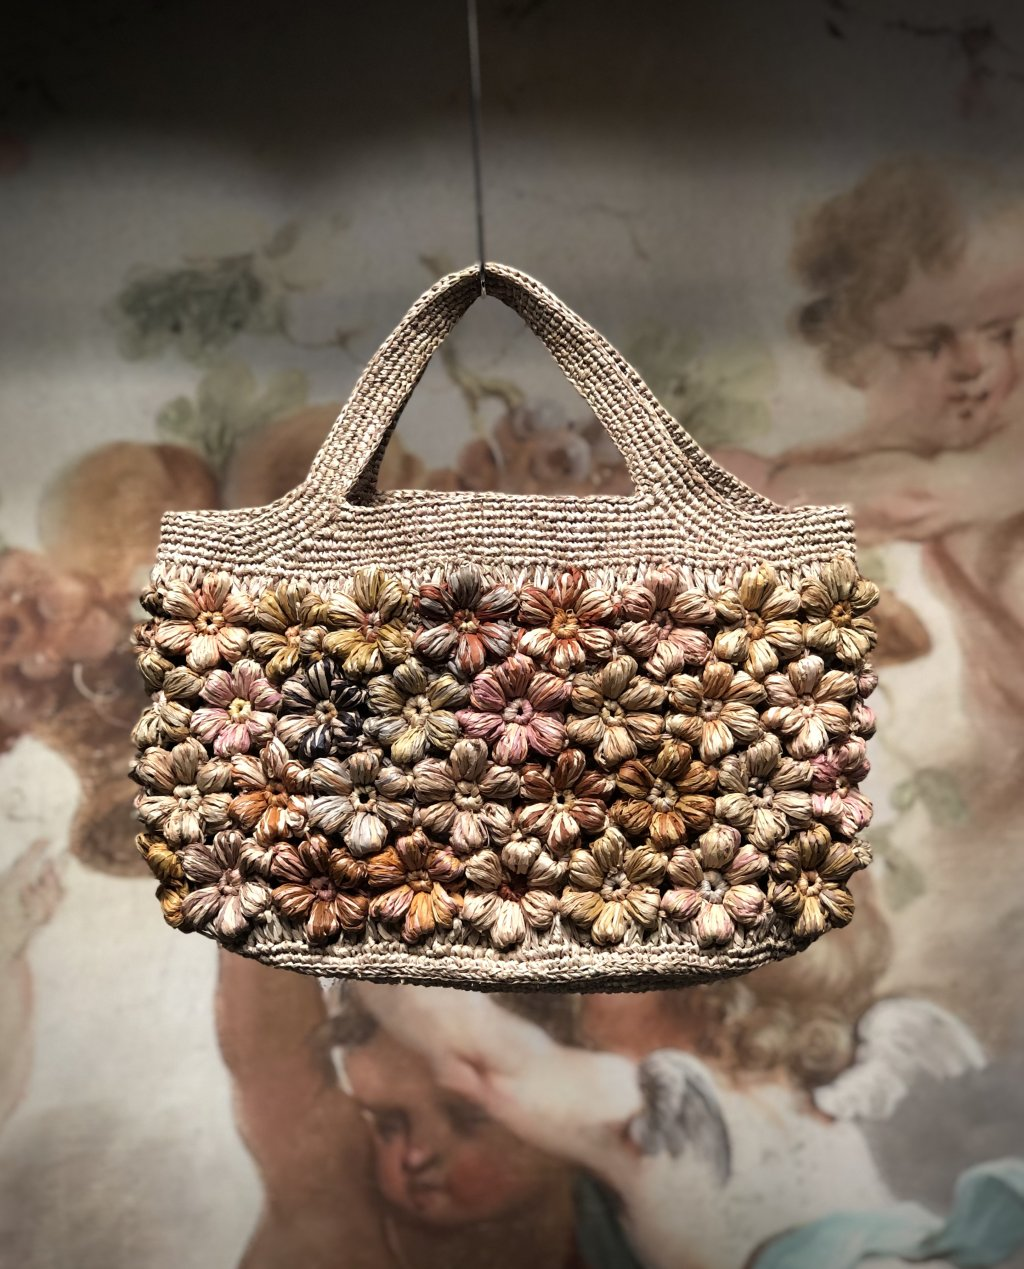 Sophie Digard   ALL NEW - SPRING 2020   Small Rafia Hand Bag with Decorative Flowers